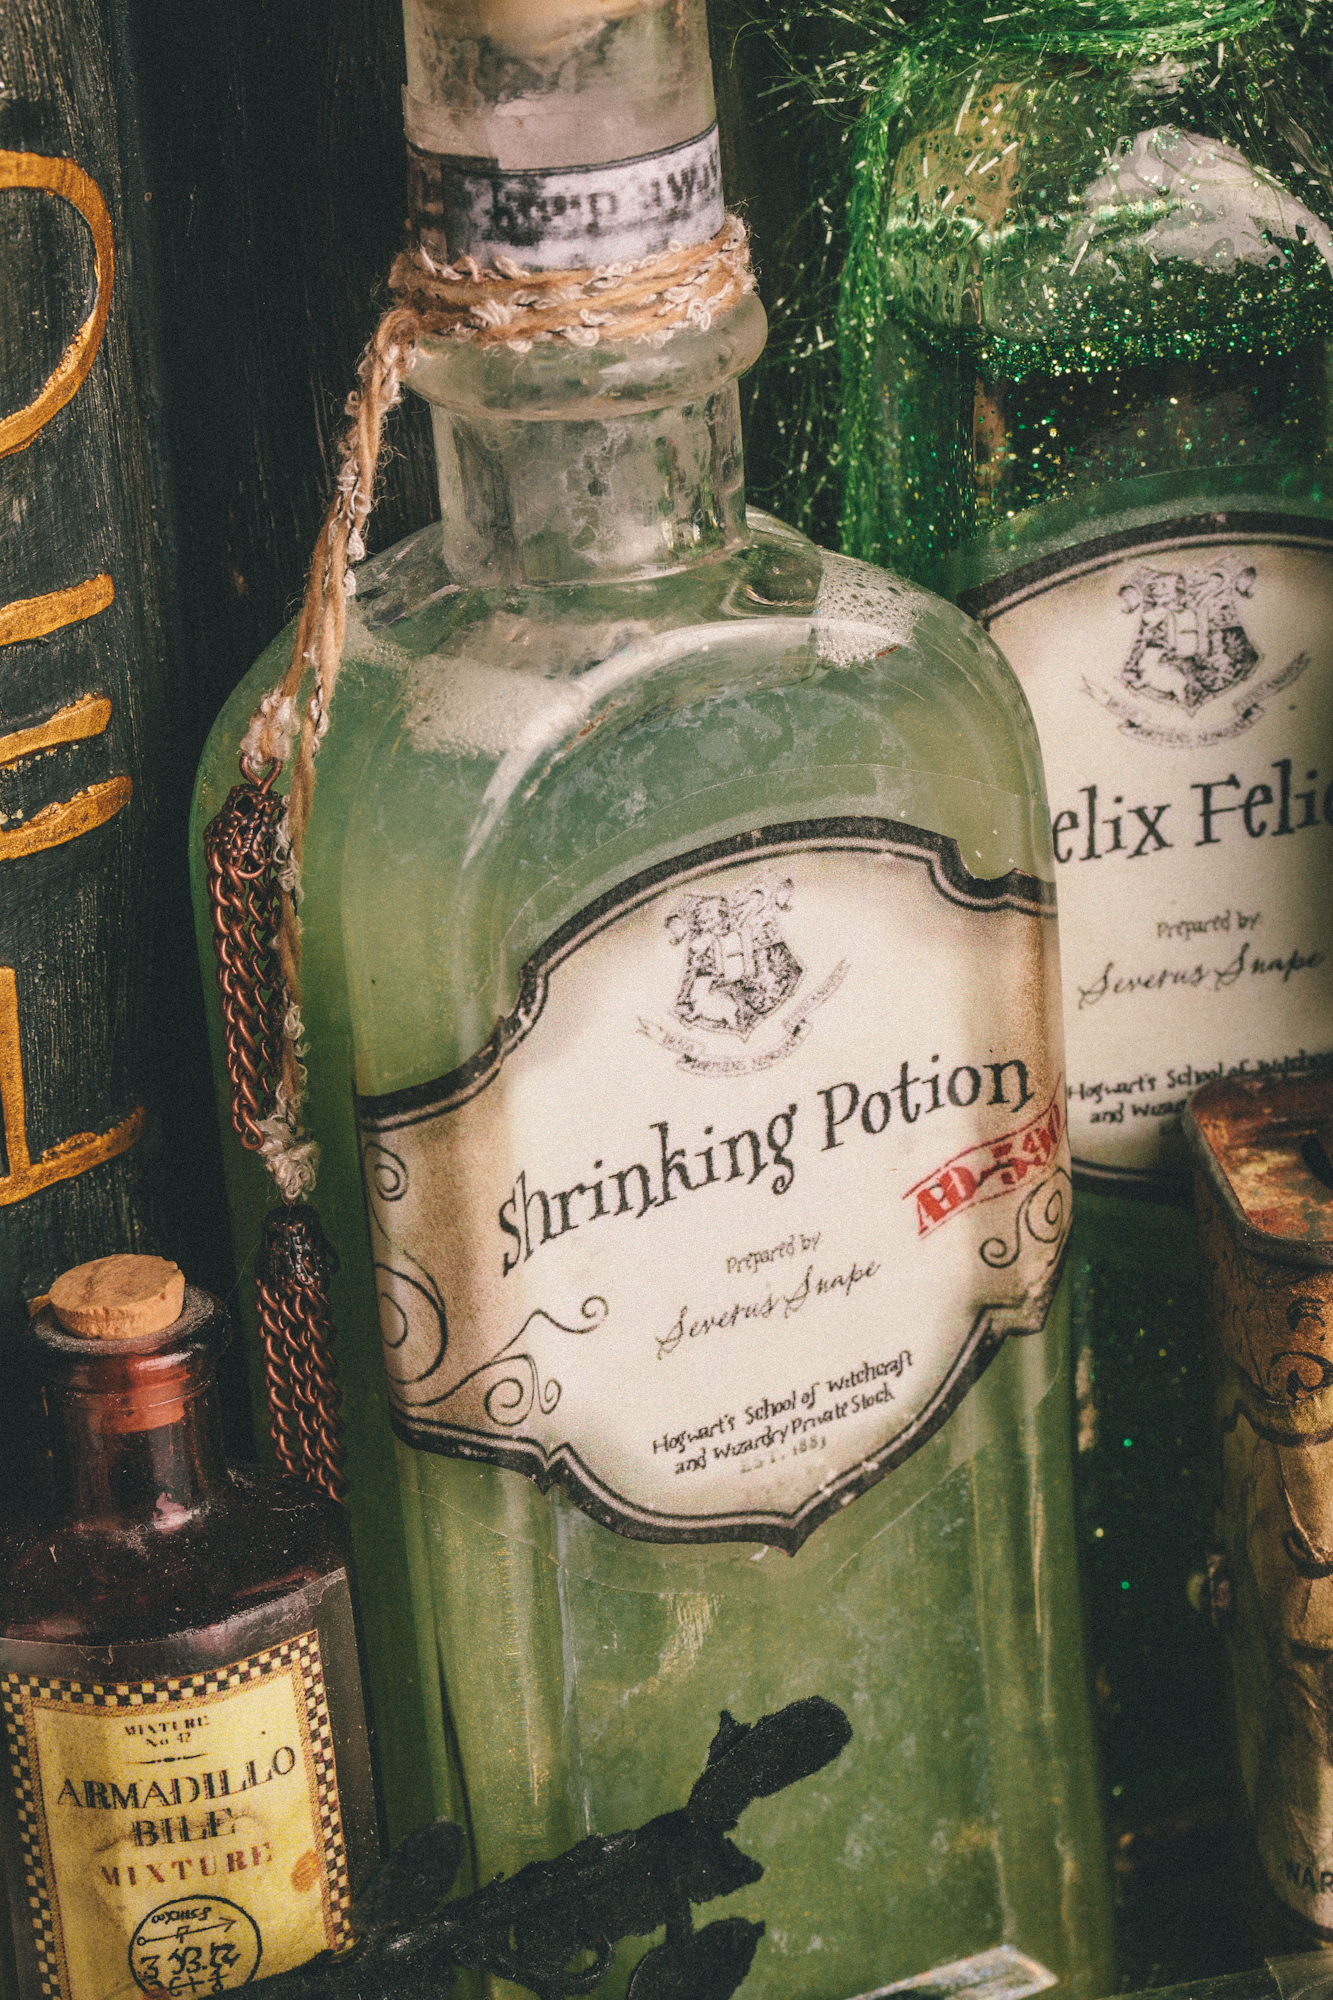 Other Diy Harry Potter Potions For Halloween Shrinking